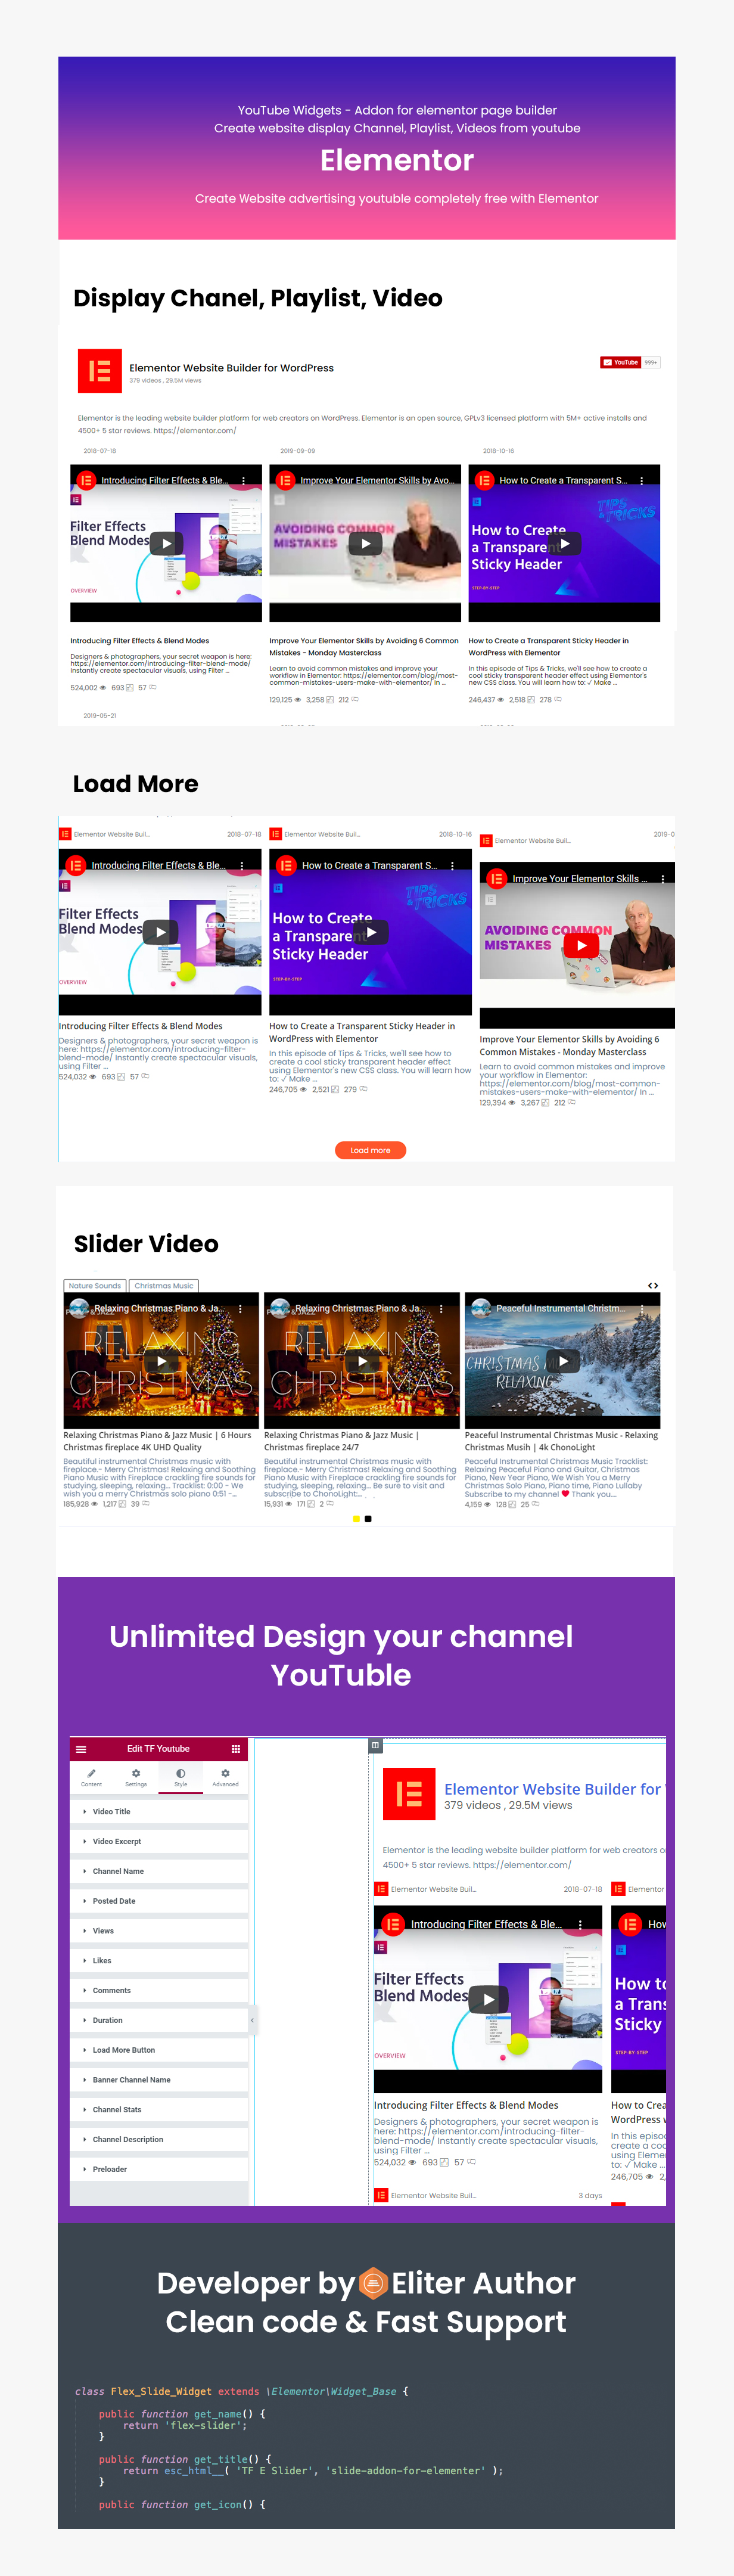 youtube video channel in Elementor Page Builder